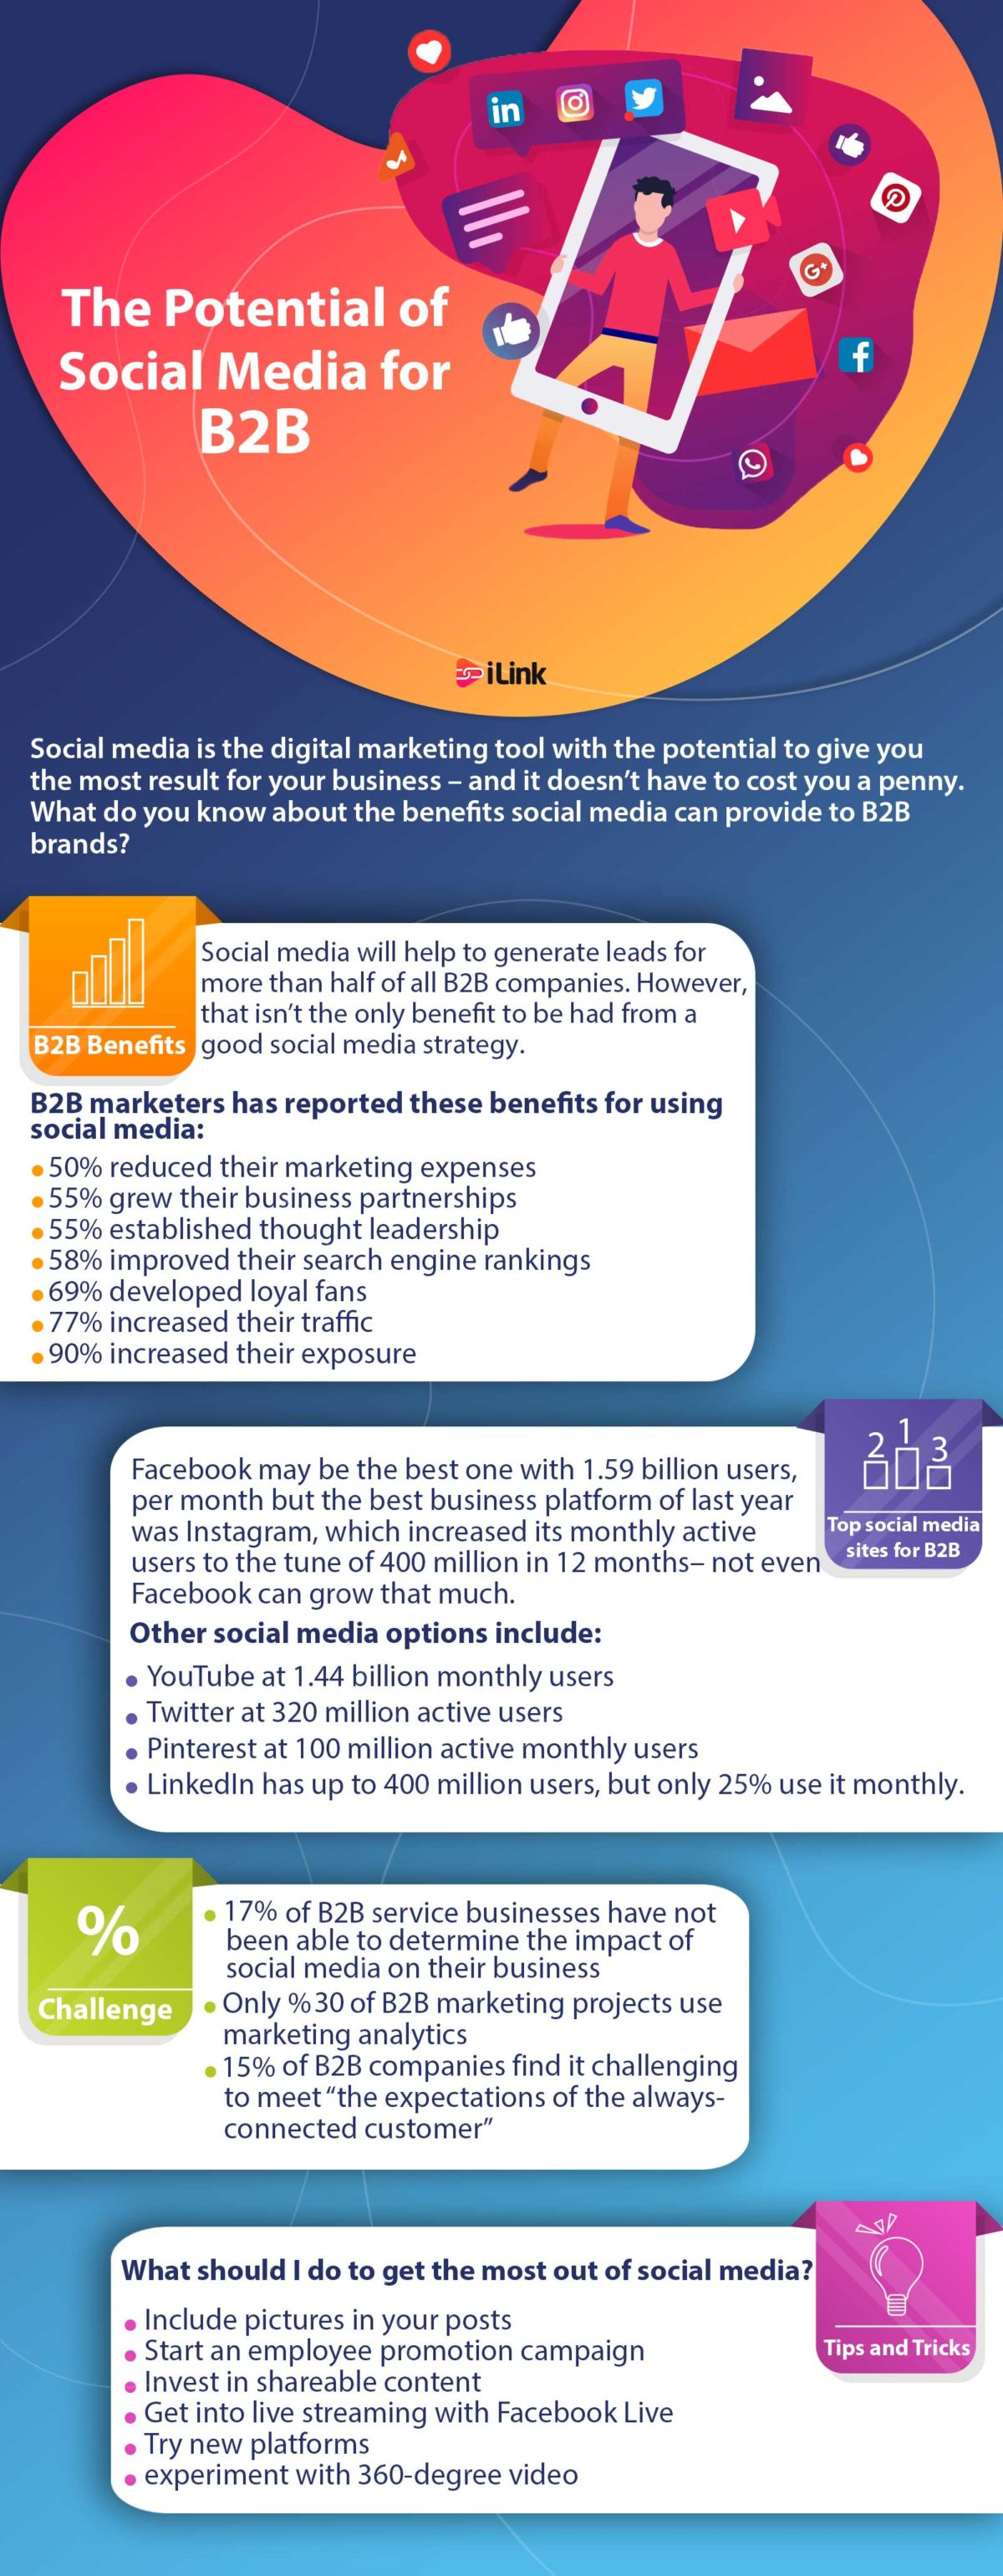 THE POTENTIAL OF SOCIAL MEDIA FOR B2B